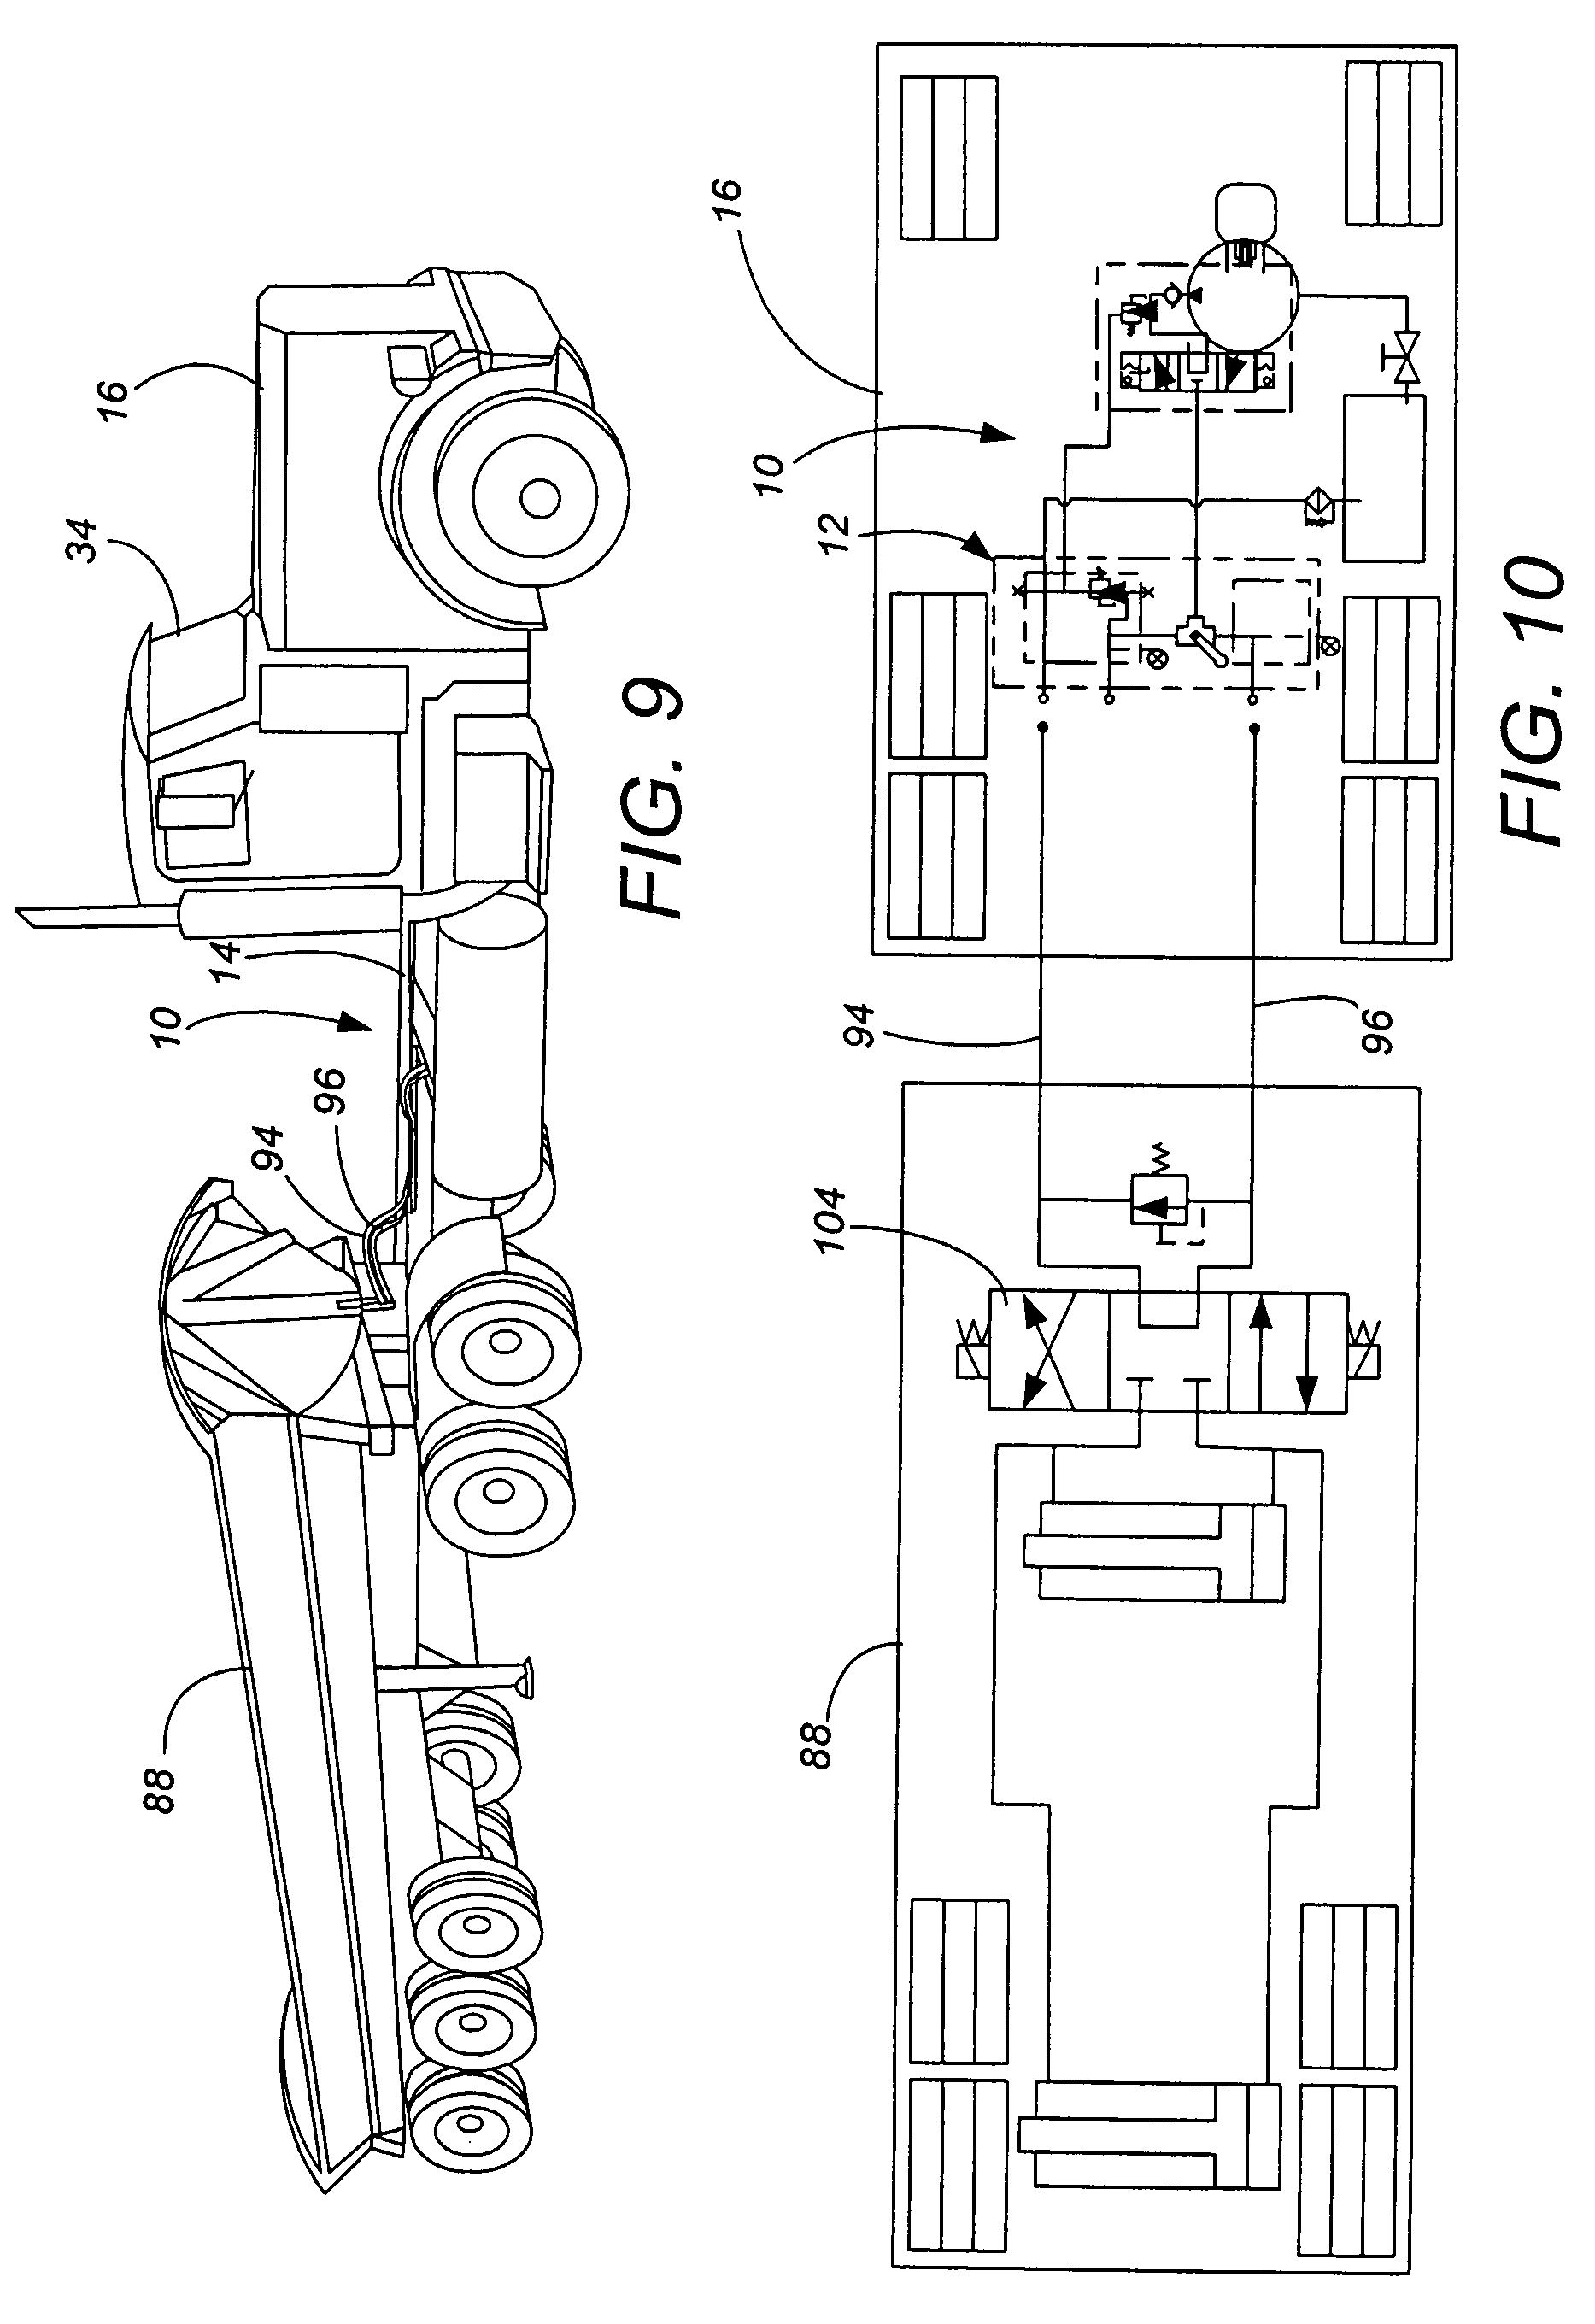 Patent US7913713 Combination wet kit Google Patents